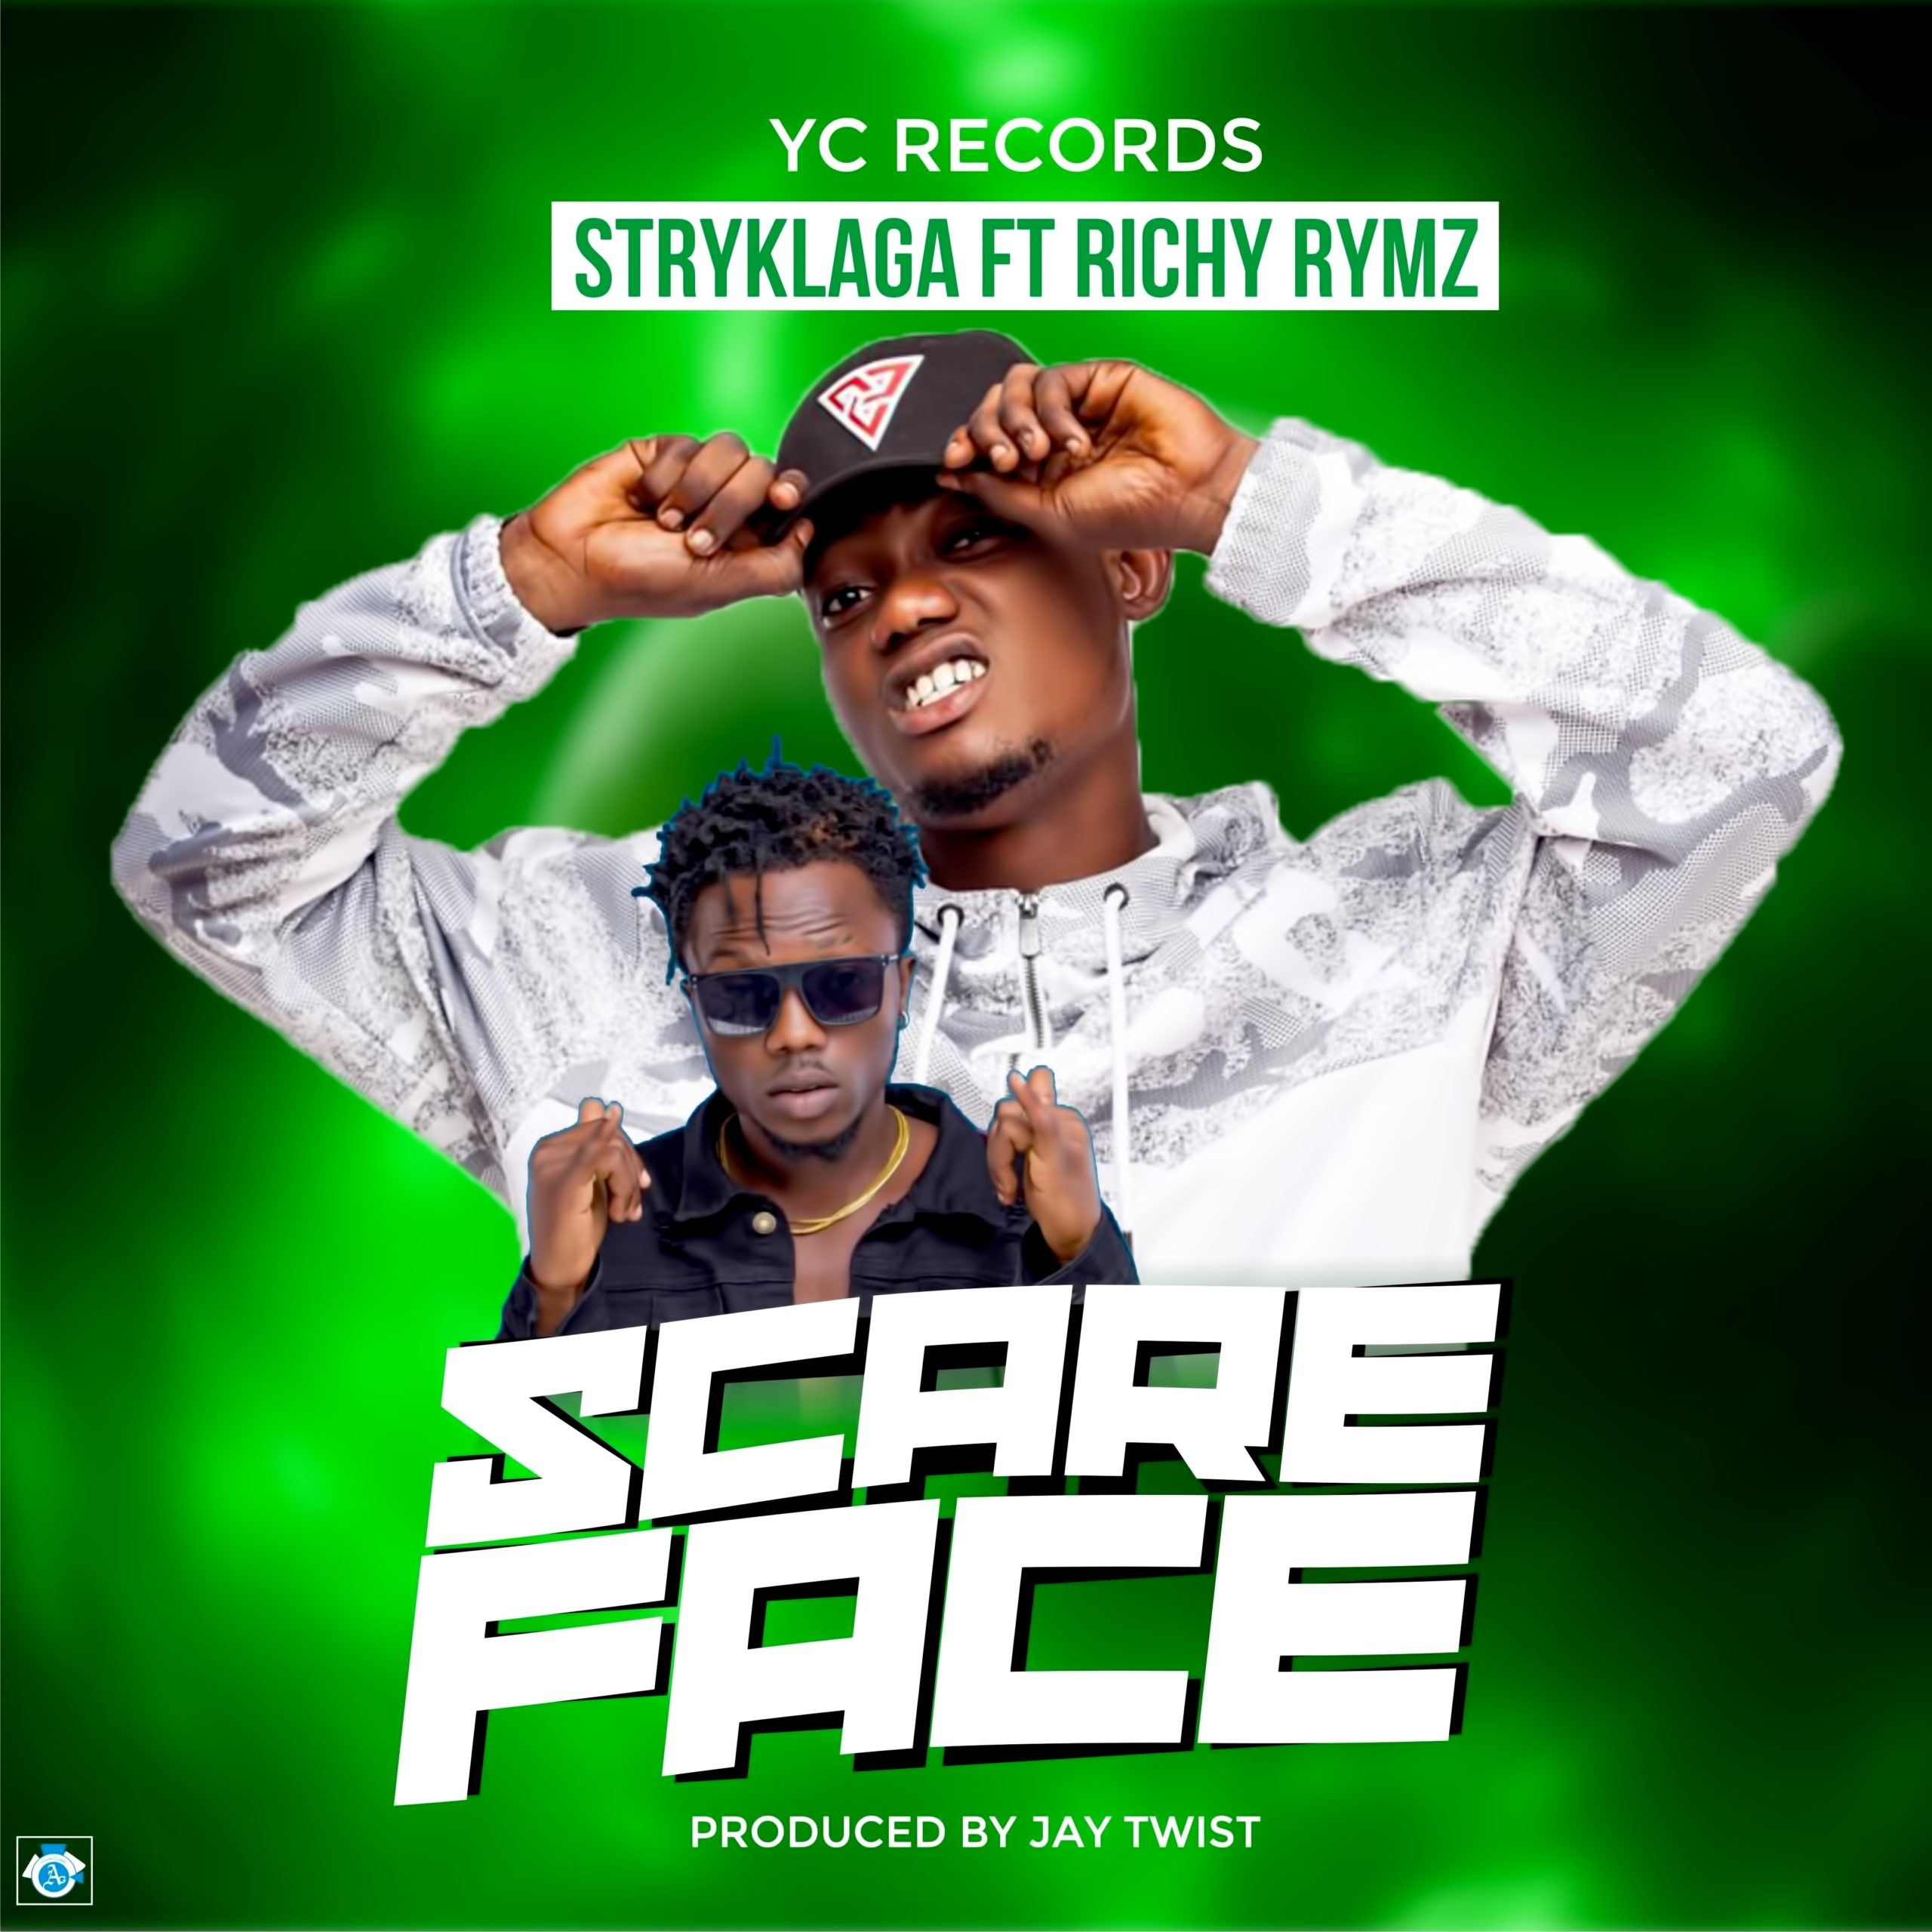 Stryklaga Ft Richy Rymz – Scareface(Prod. By Jay Twist)